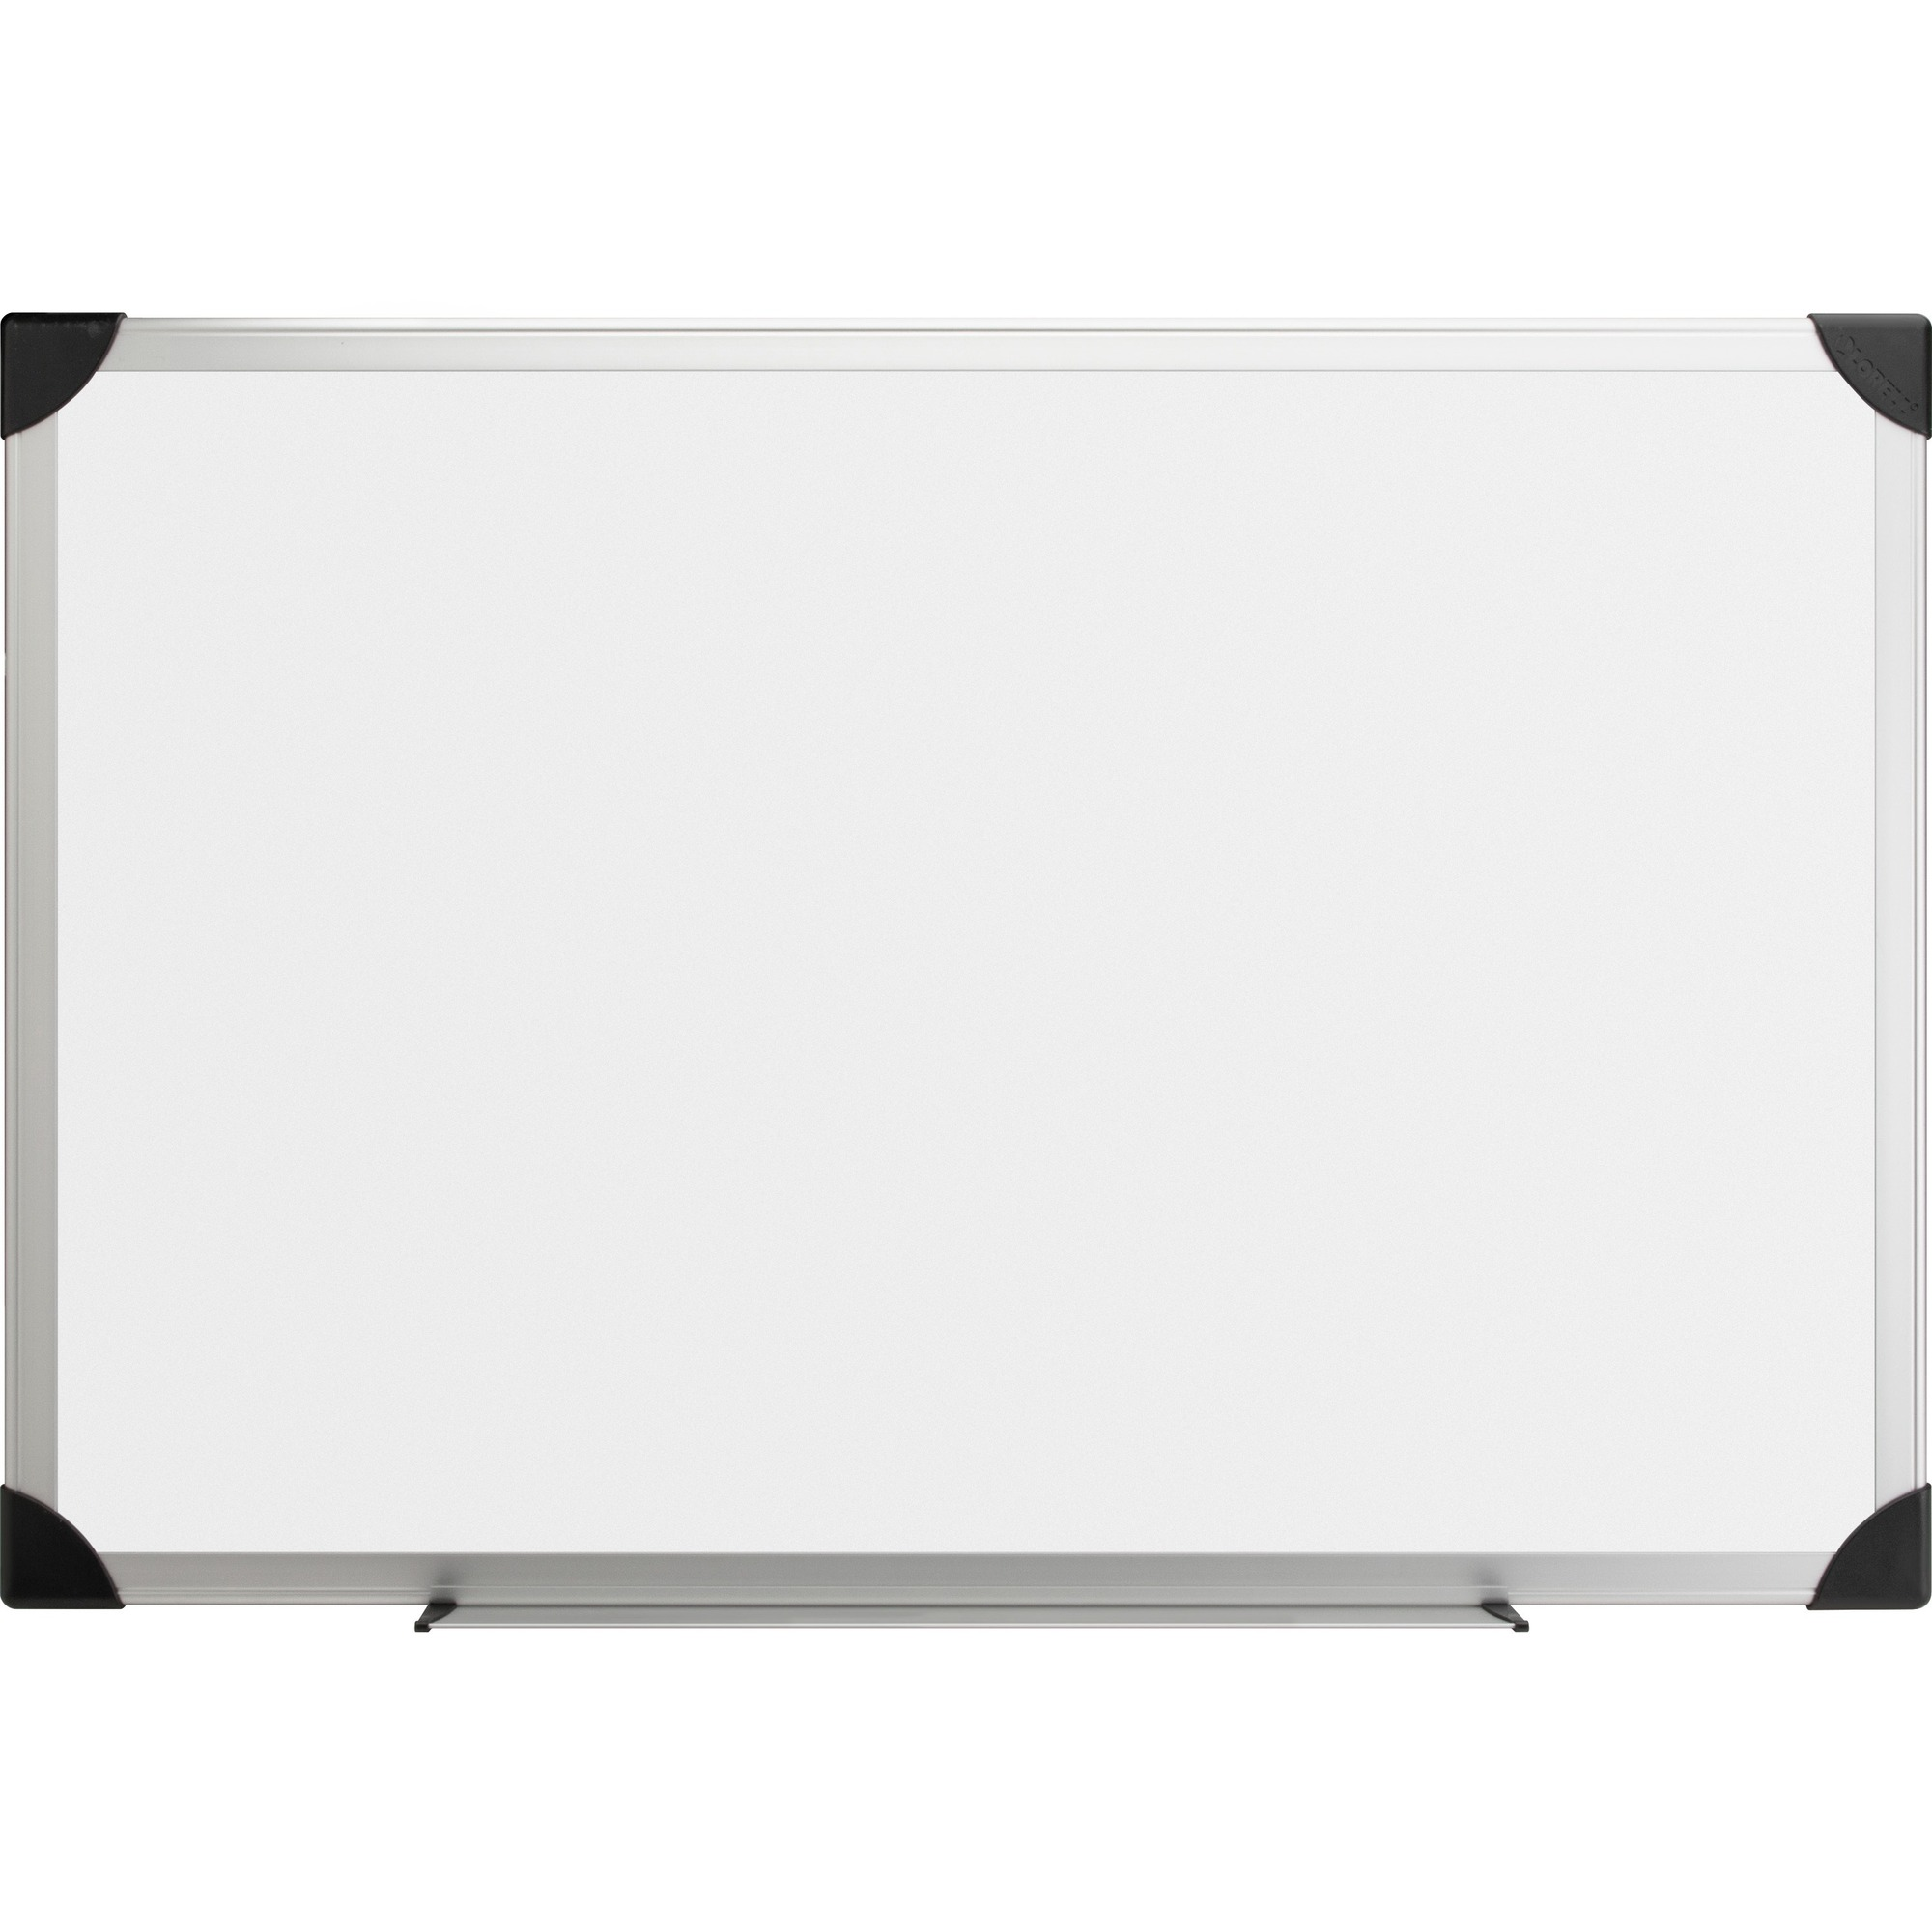 Lorell Aluminum Frame Dry-erase Boards - 72 (6 Ft) Width X 48 (4 Ft) Height - White Styrene Surface - Aluminum Frame - 1 Each